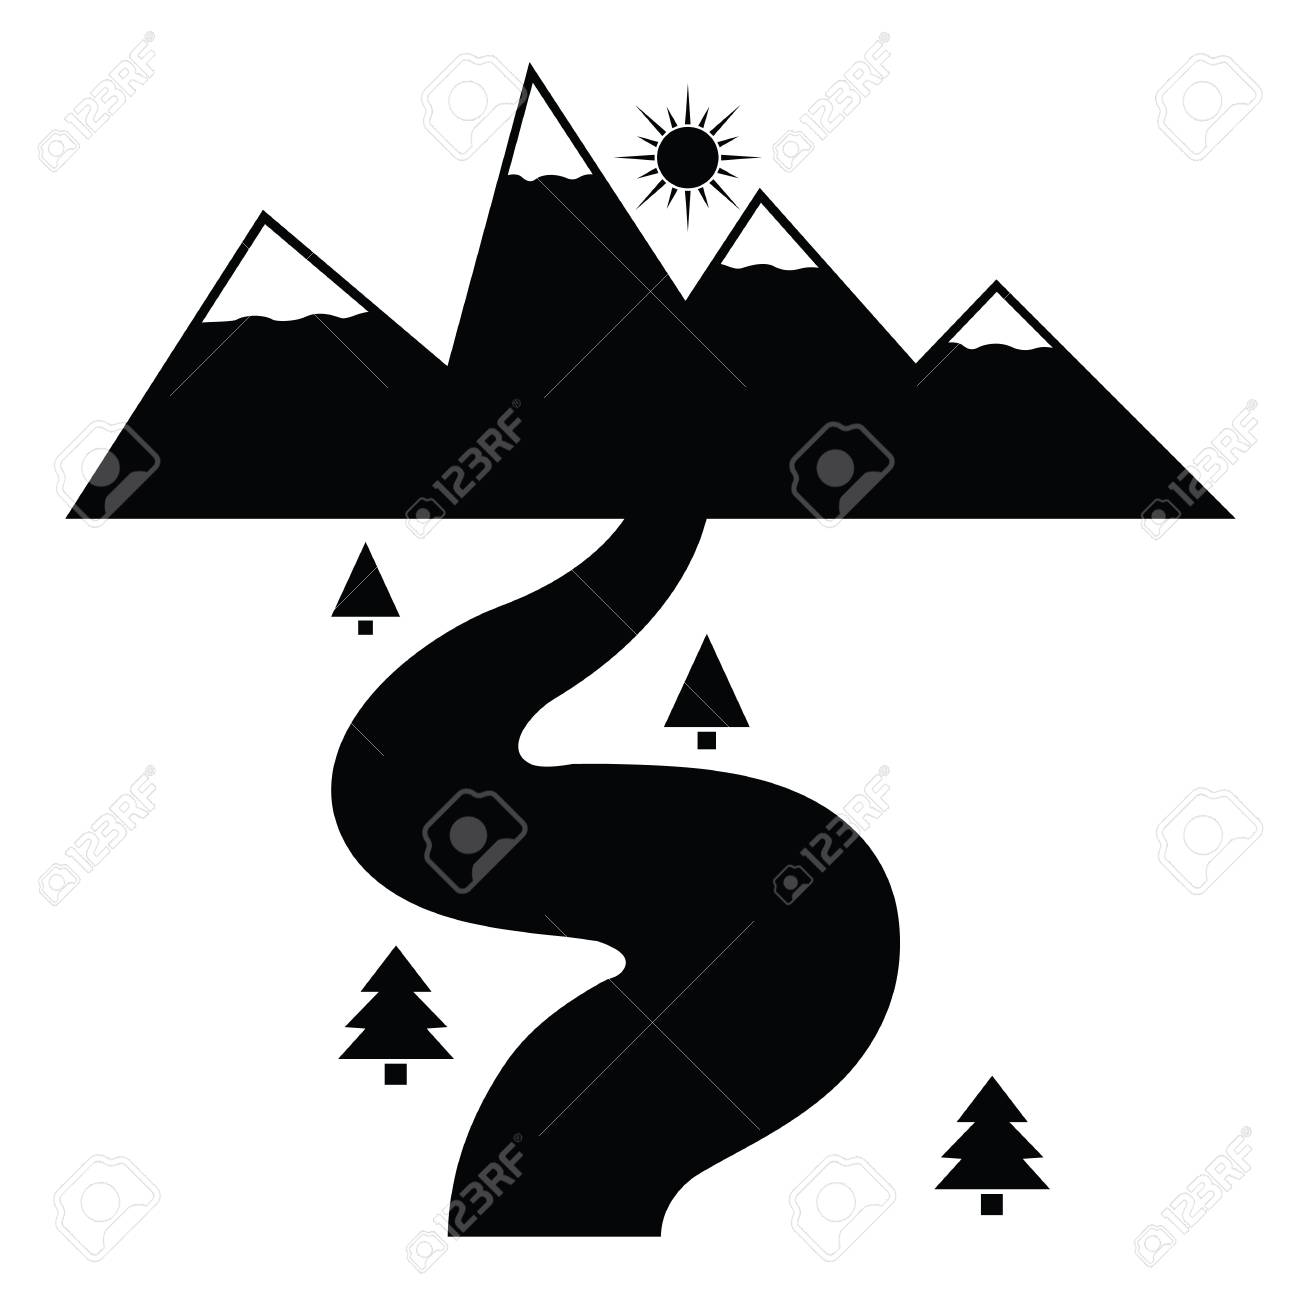 illustration of river icon in black and white royalty free cliparts vectors and stock illustration image 87121939 123rf com